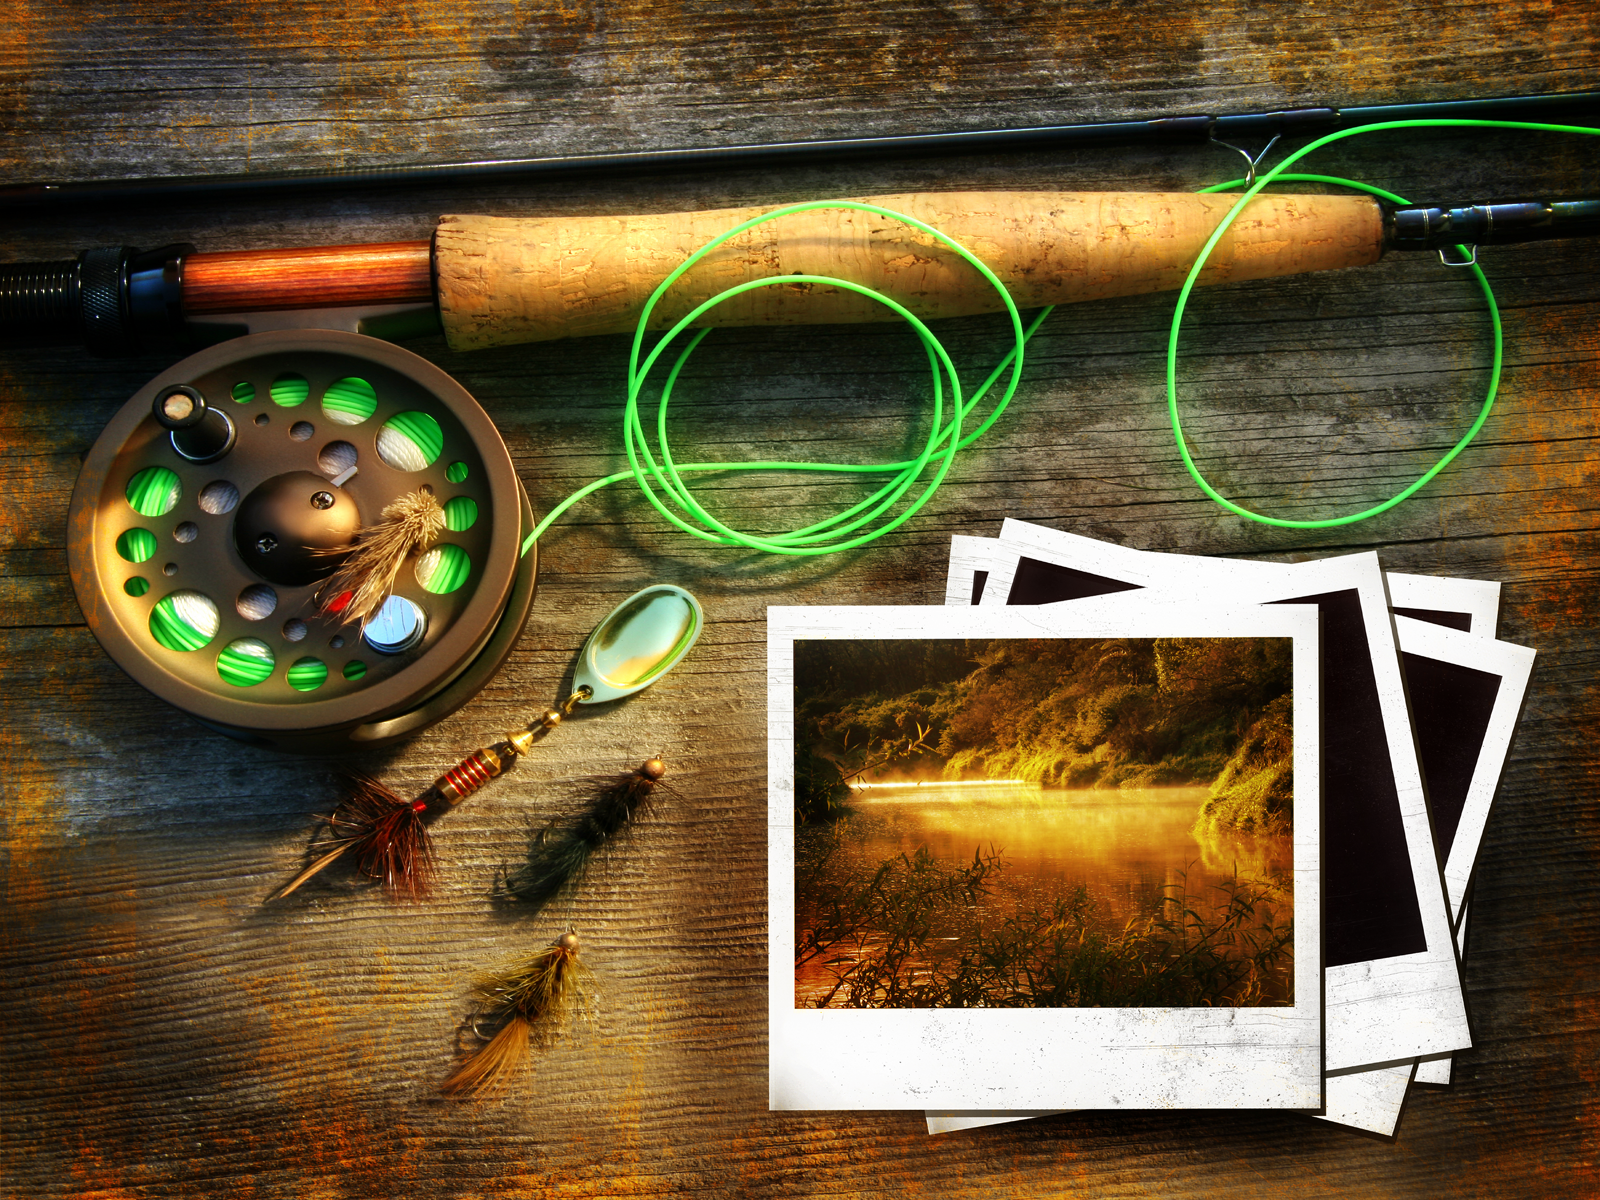 Fly Fishing wallpaper II Congressional Republicans Still Hoping 1600x1200